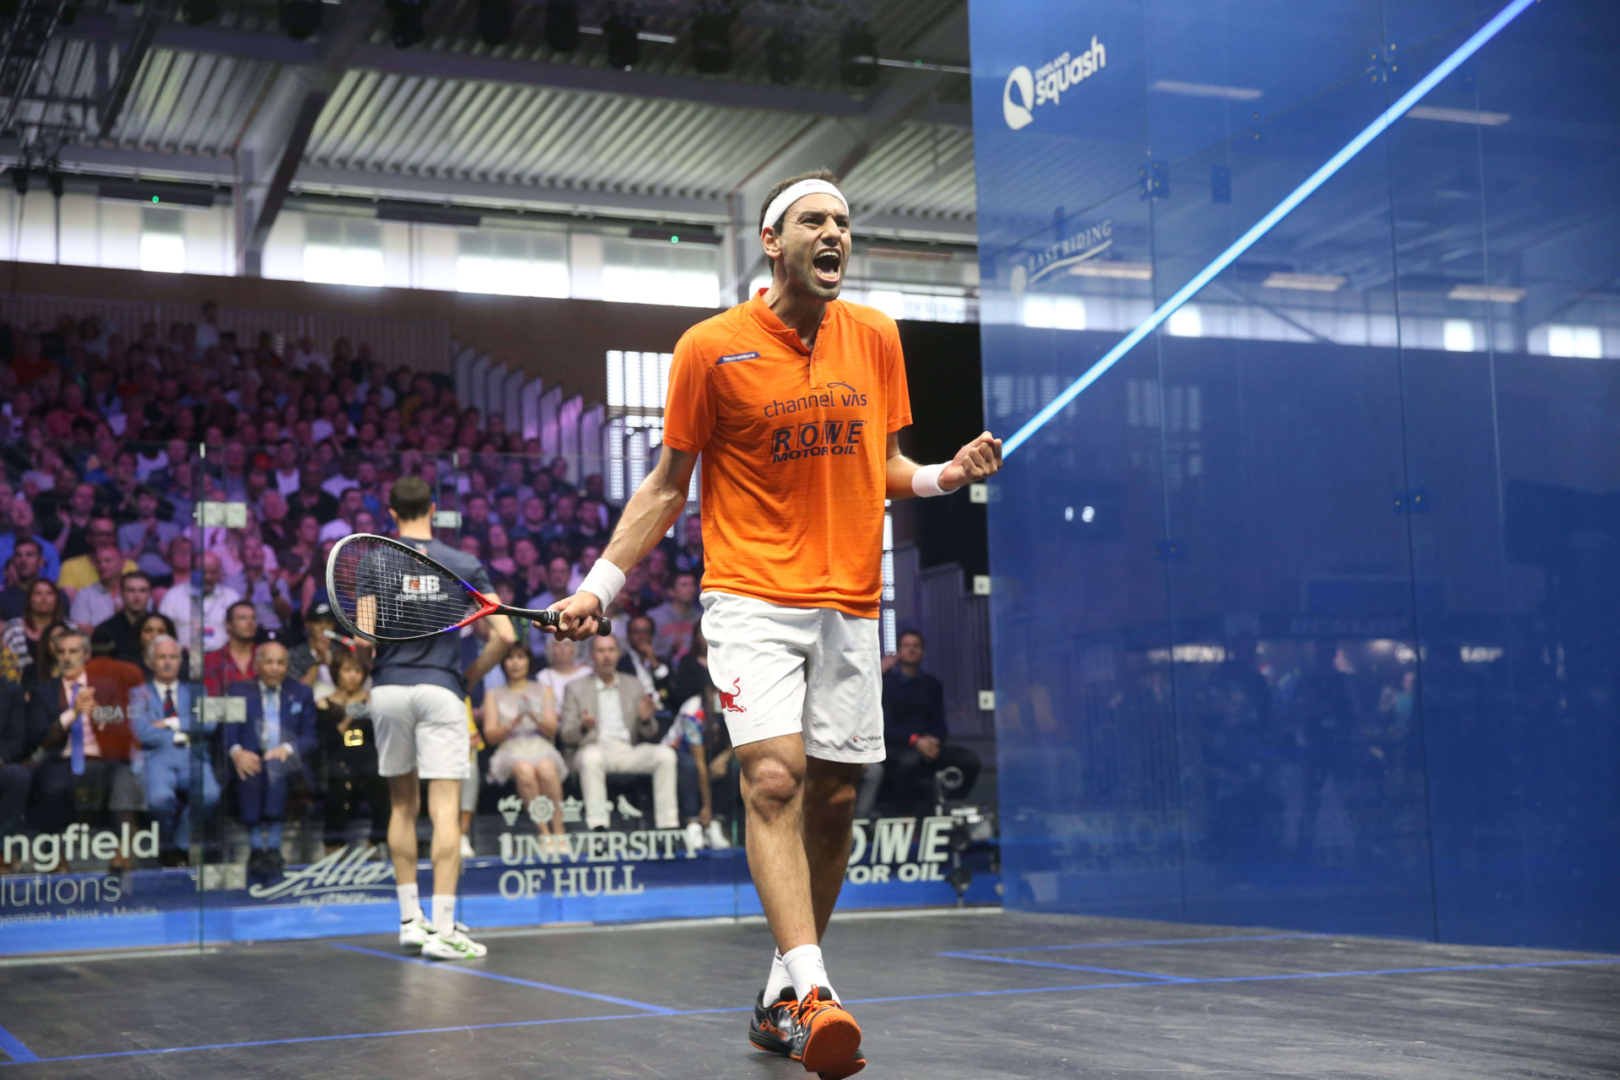 2 men playing squash in a court in front of a crowd